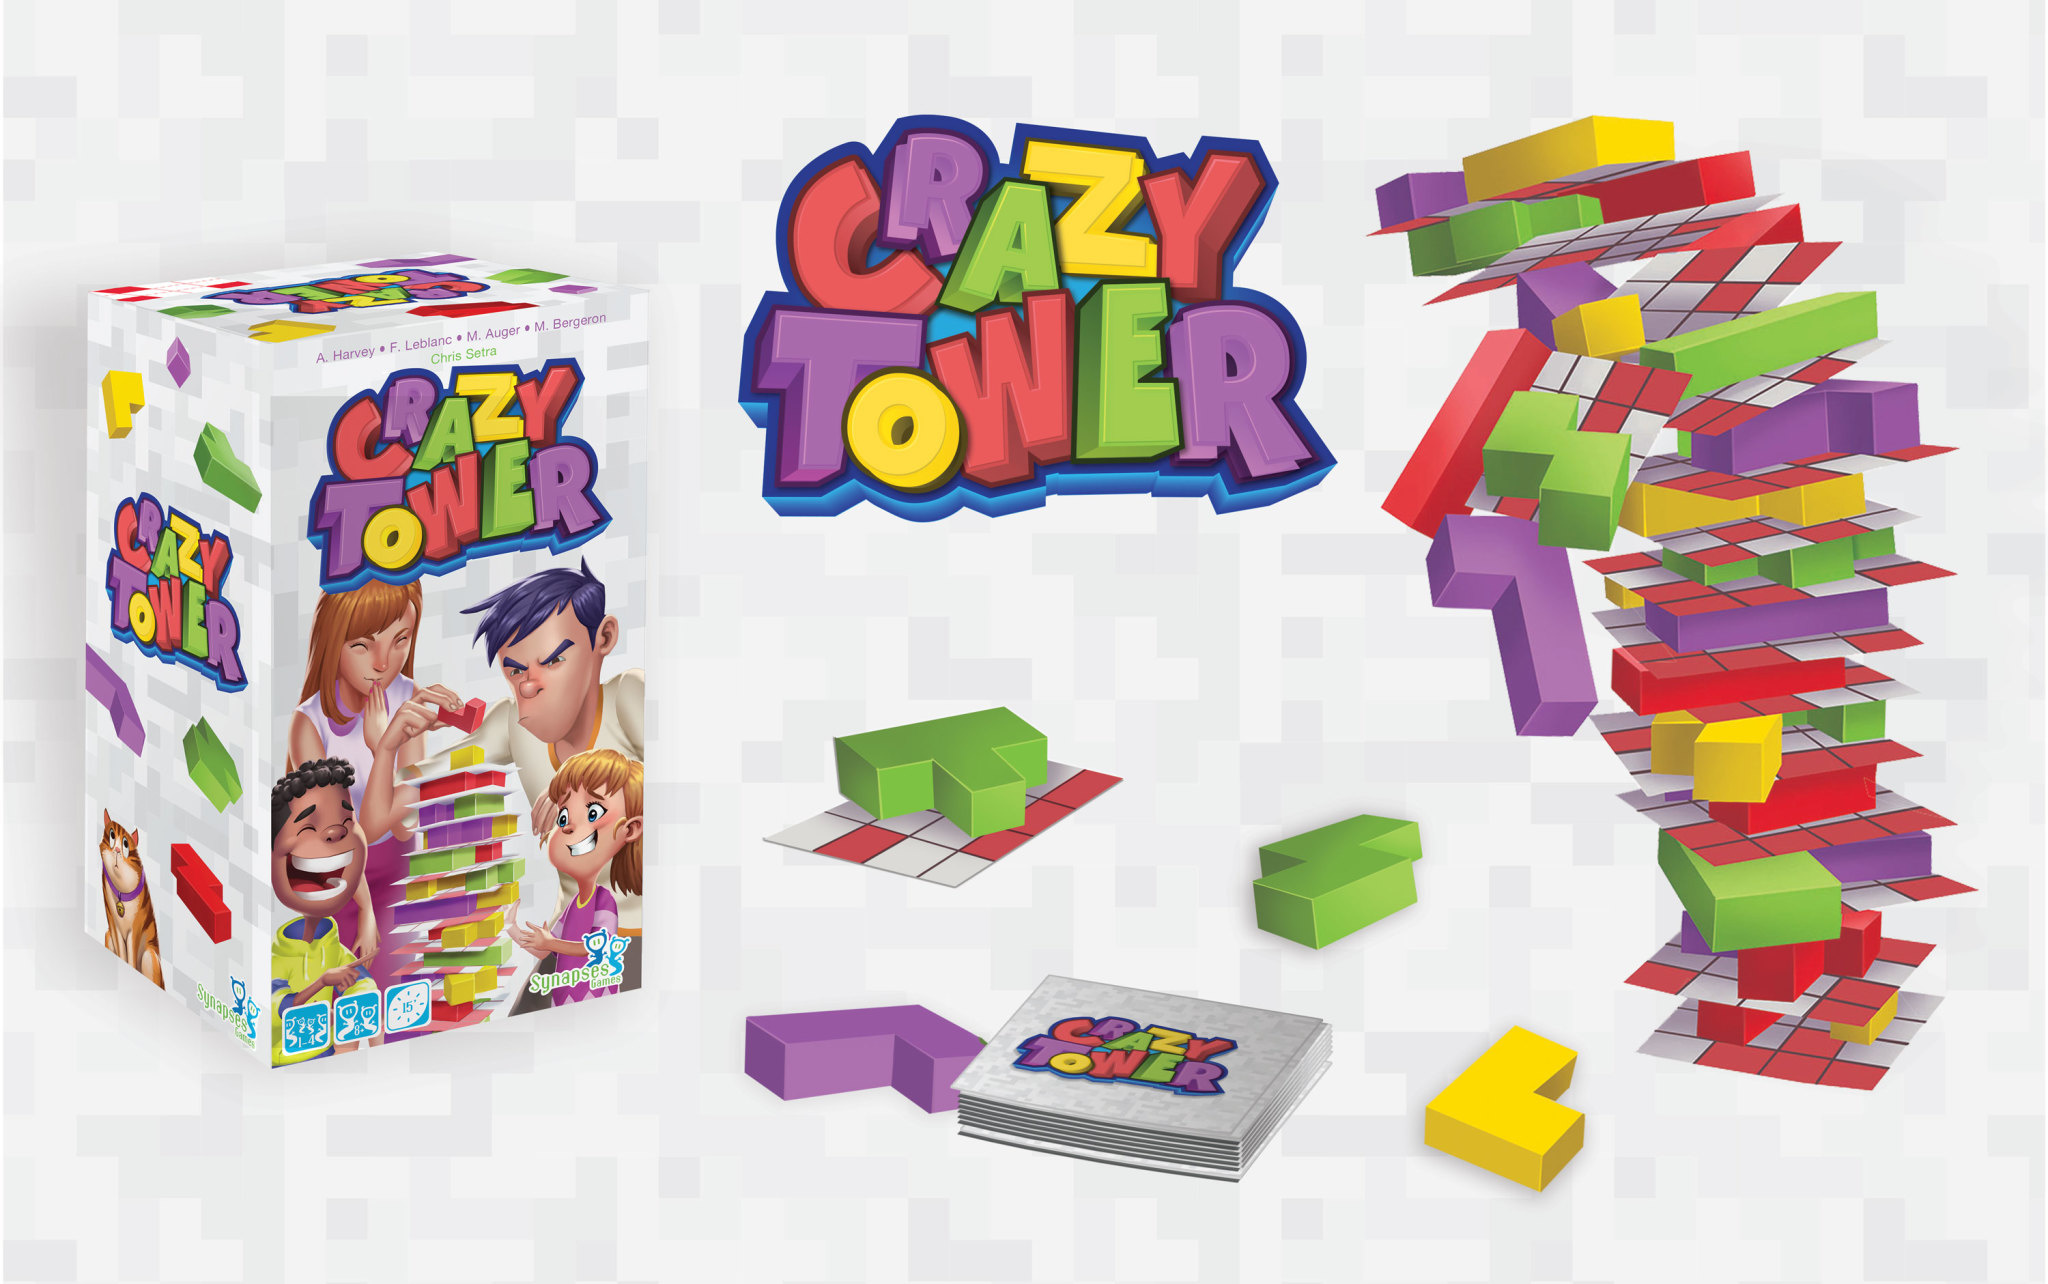 SYNAPSES GAMES CRAZY TOWER (ML)